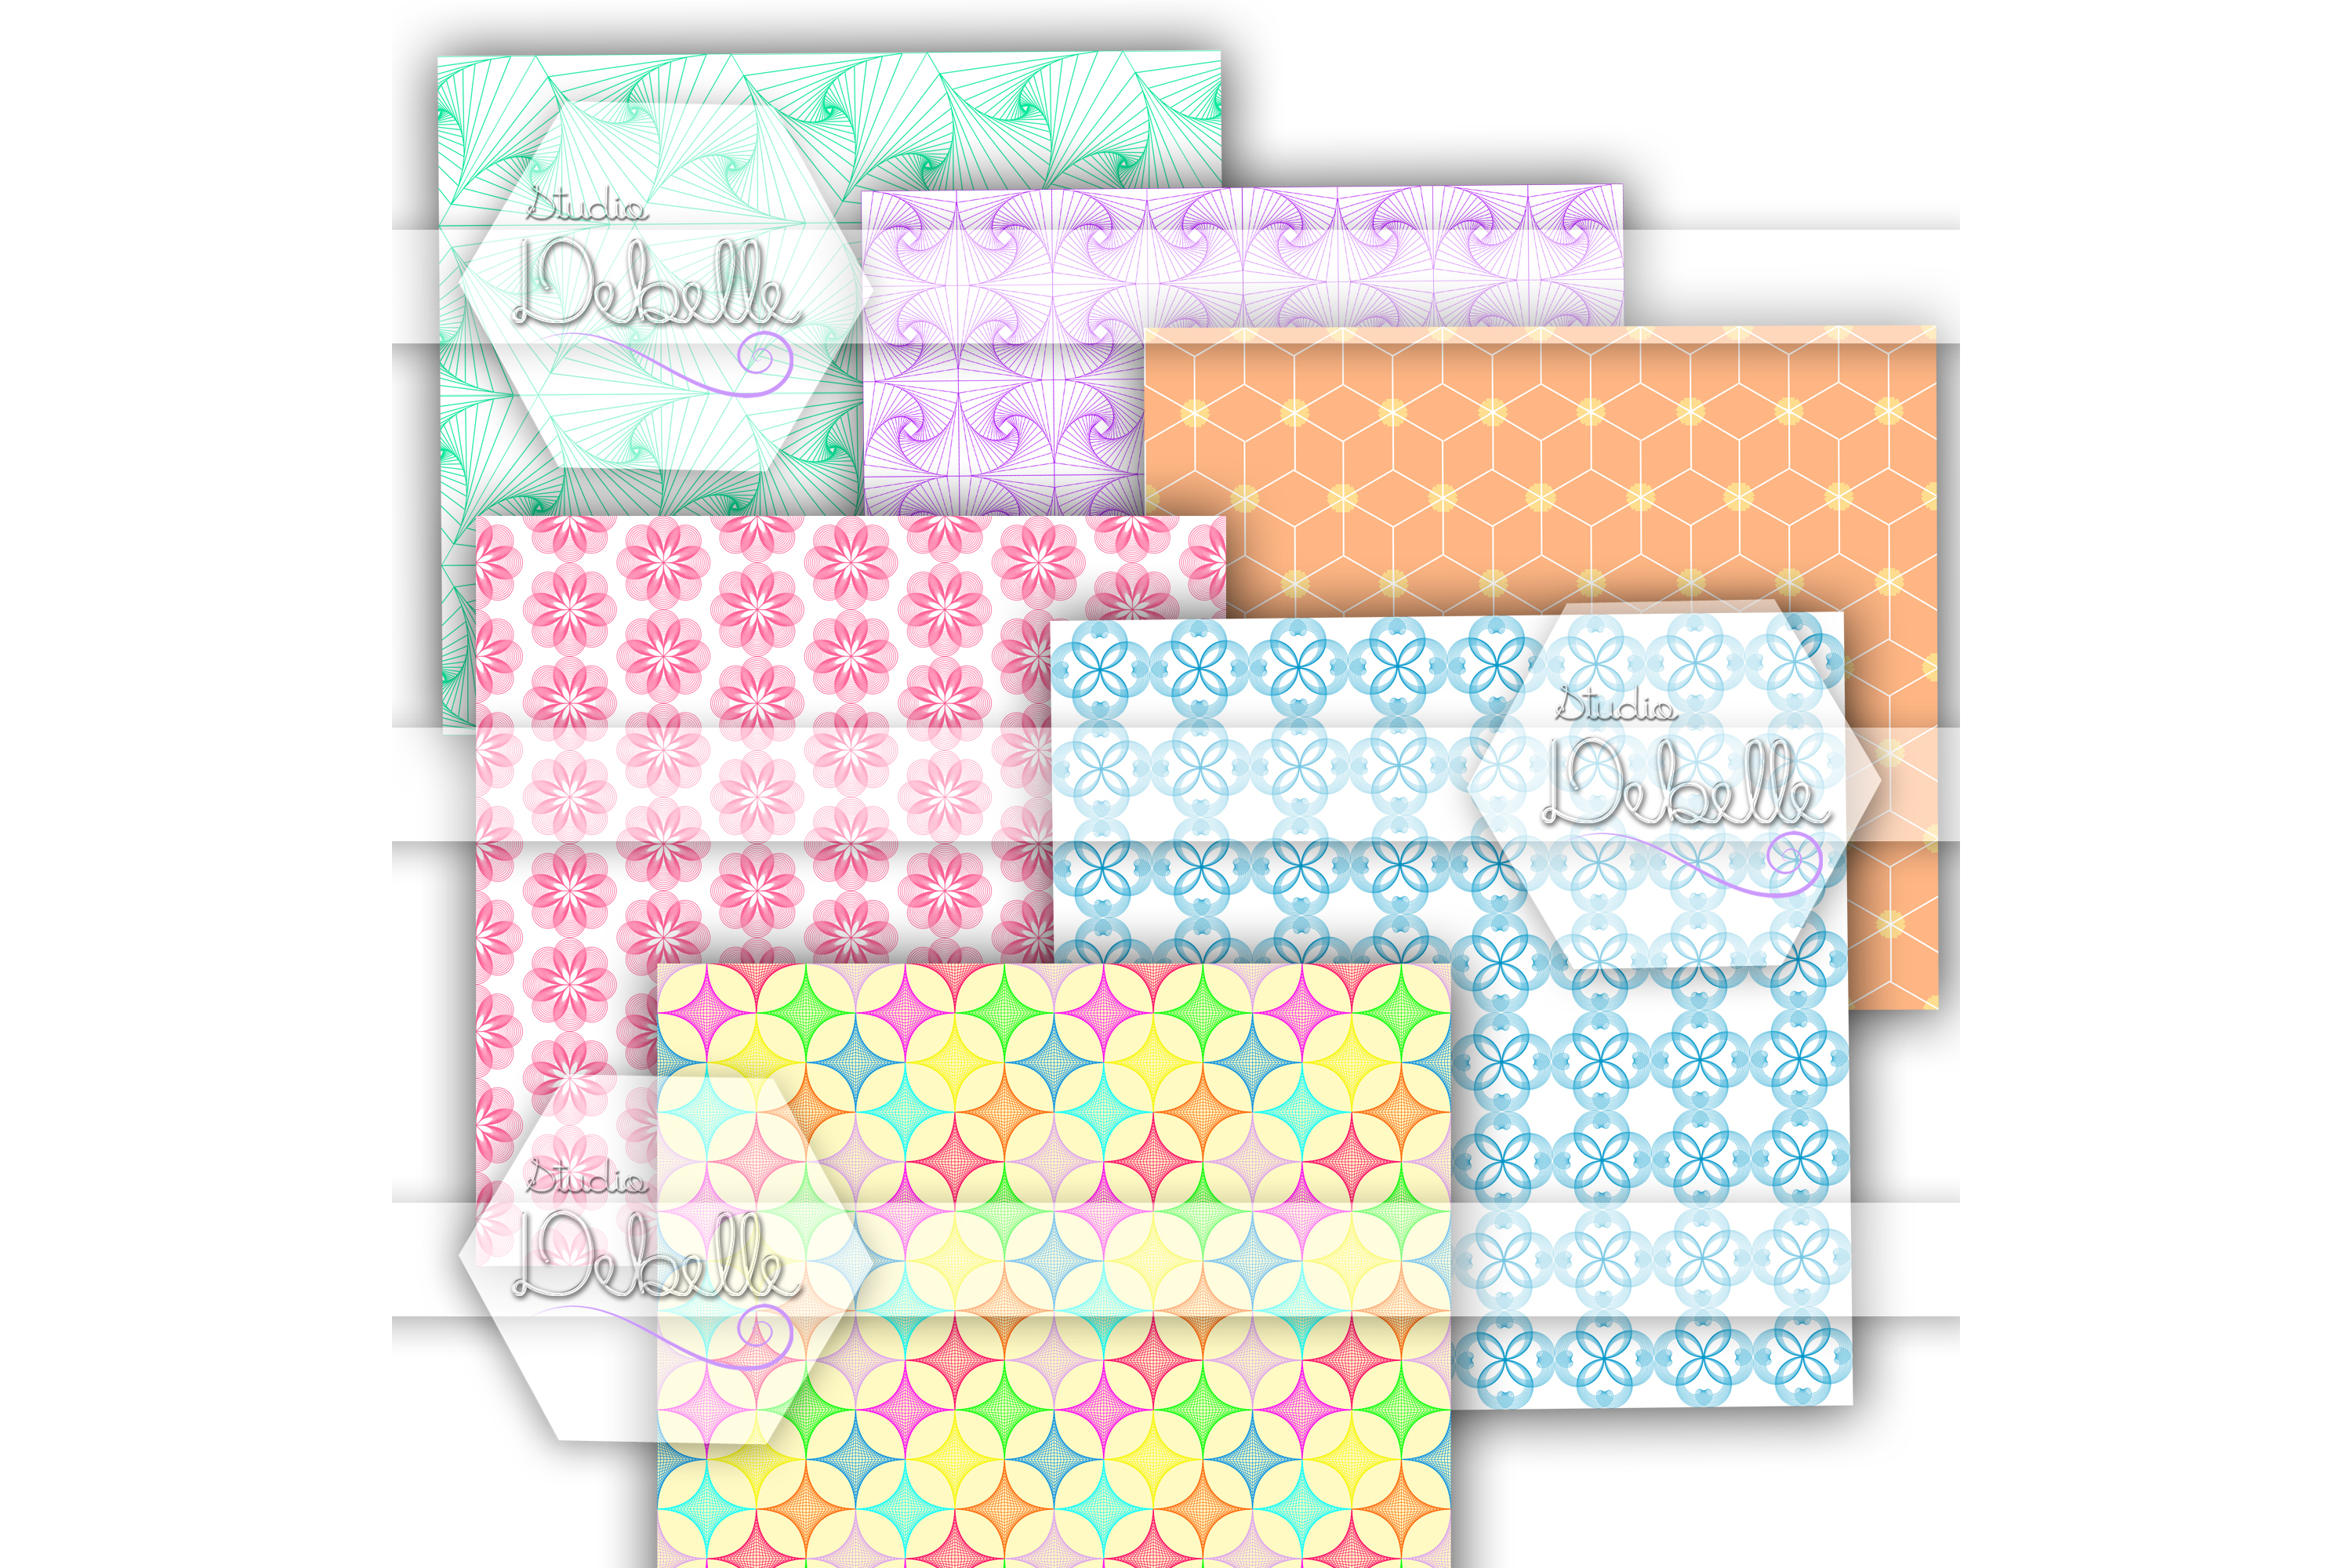 Mathemagical digital papers seamless pattern example image 2